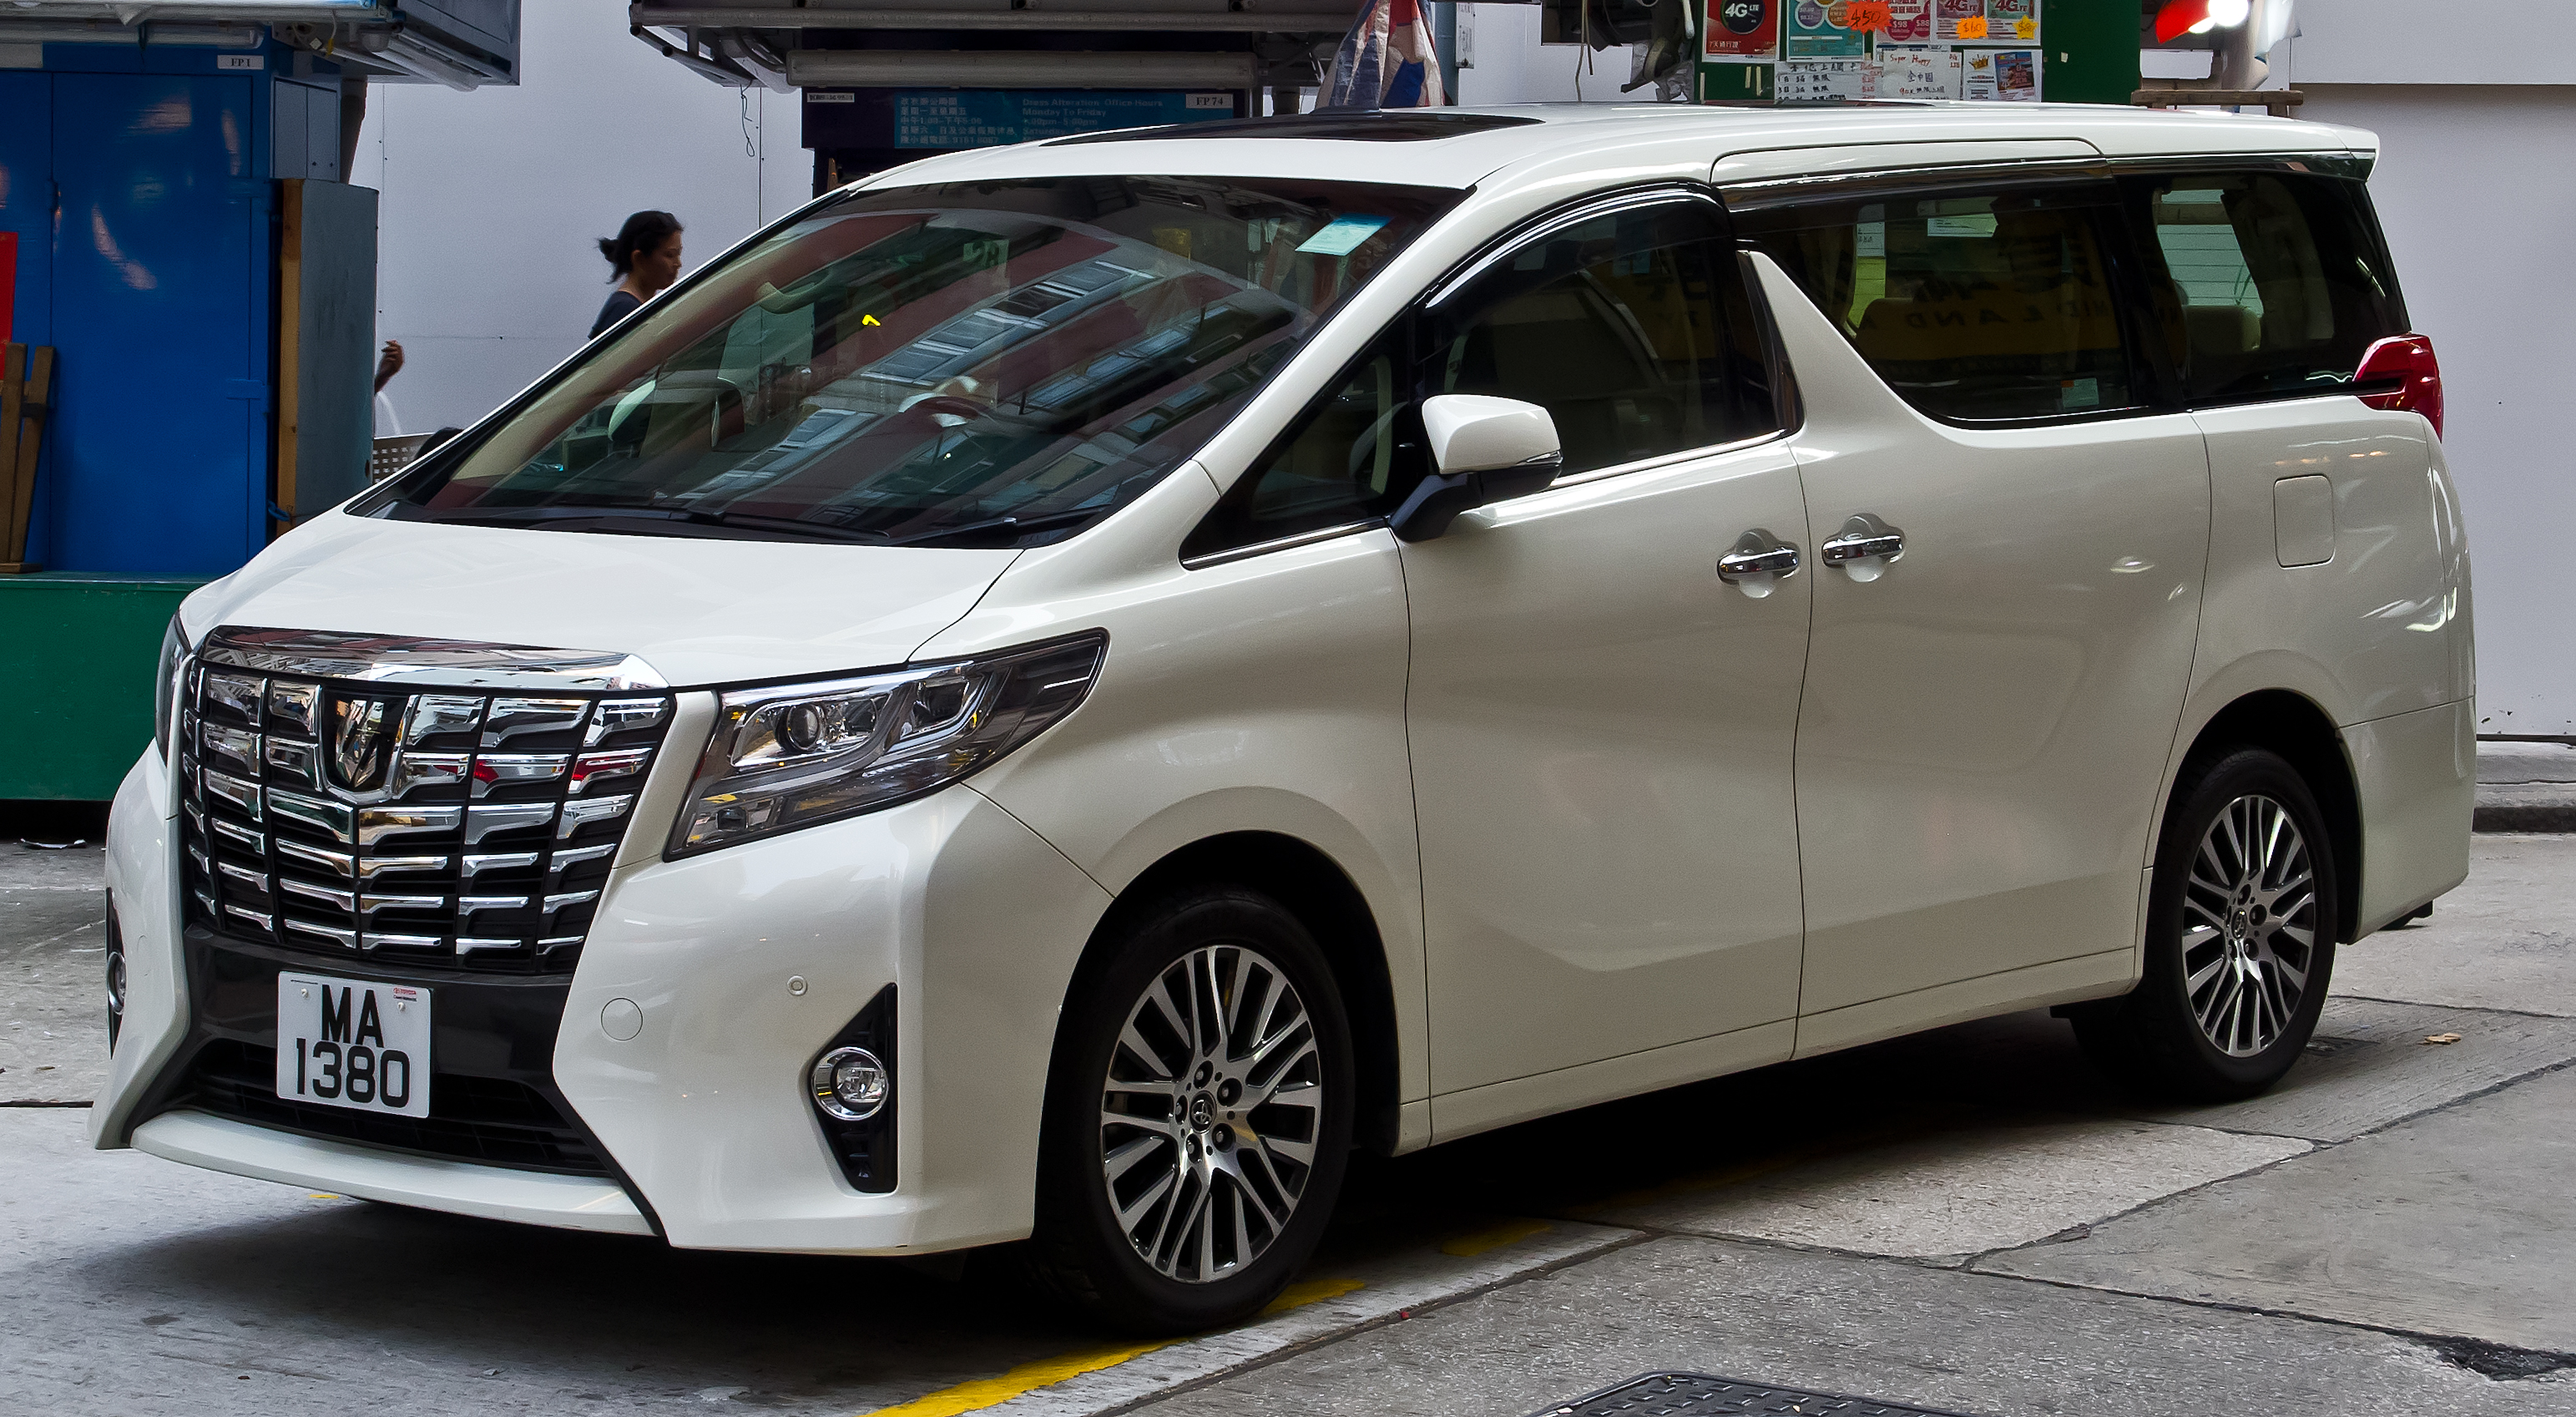 Toyota Cars Philippines Price List With Pictures